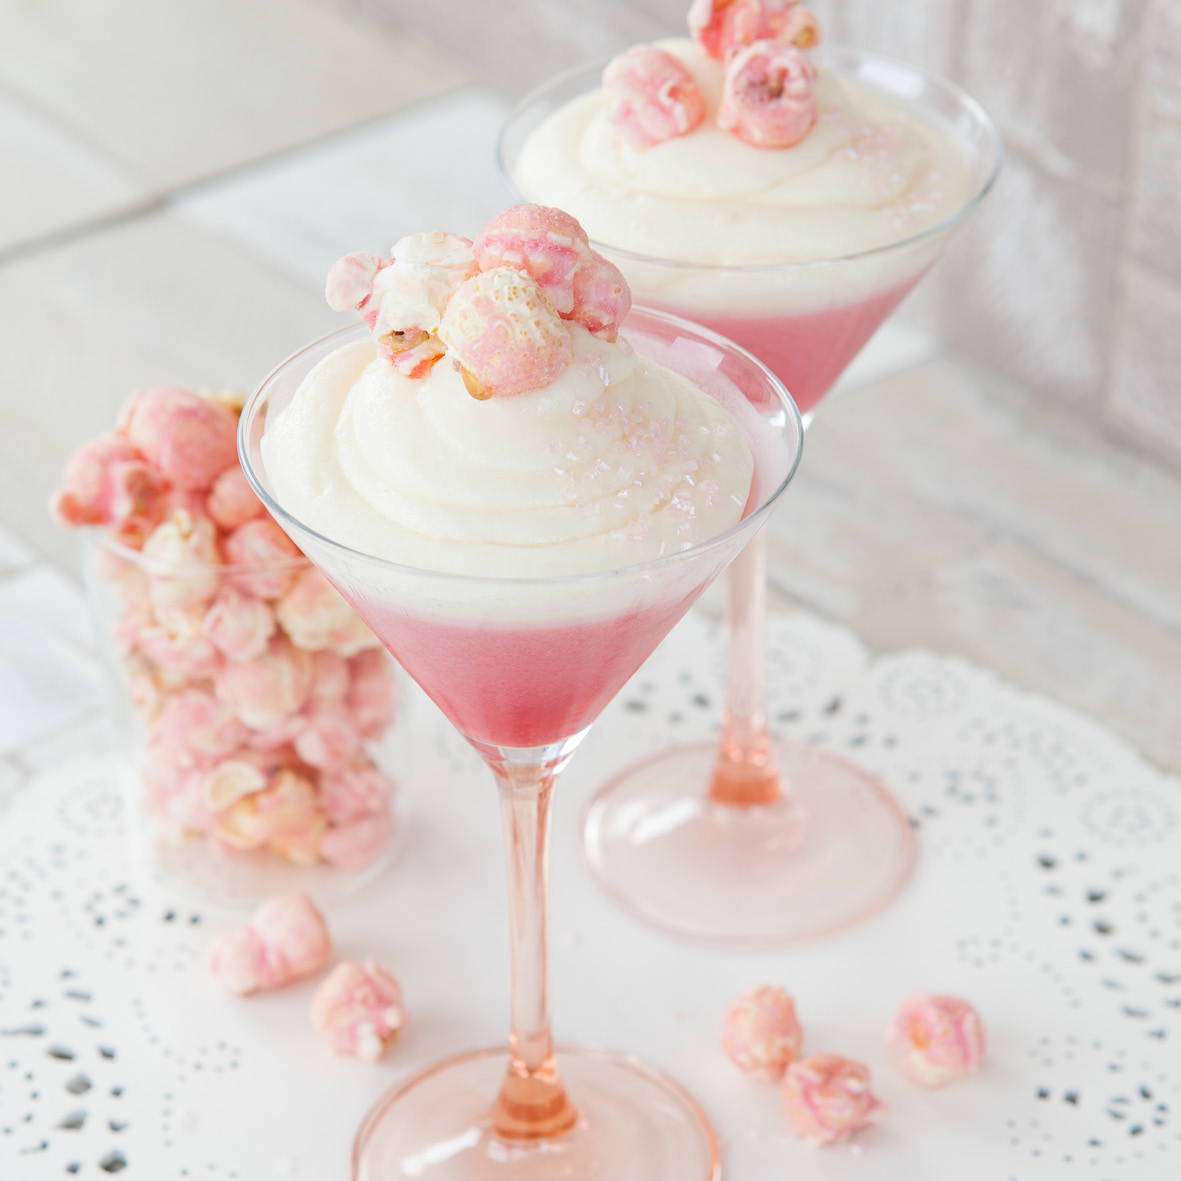 Strawberry and vanilla panna cotta with white chocolate popcorn.jpg